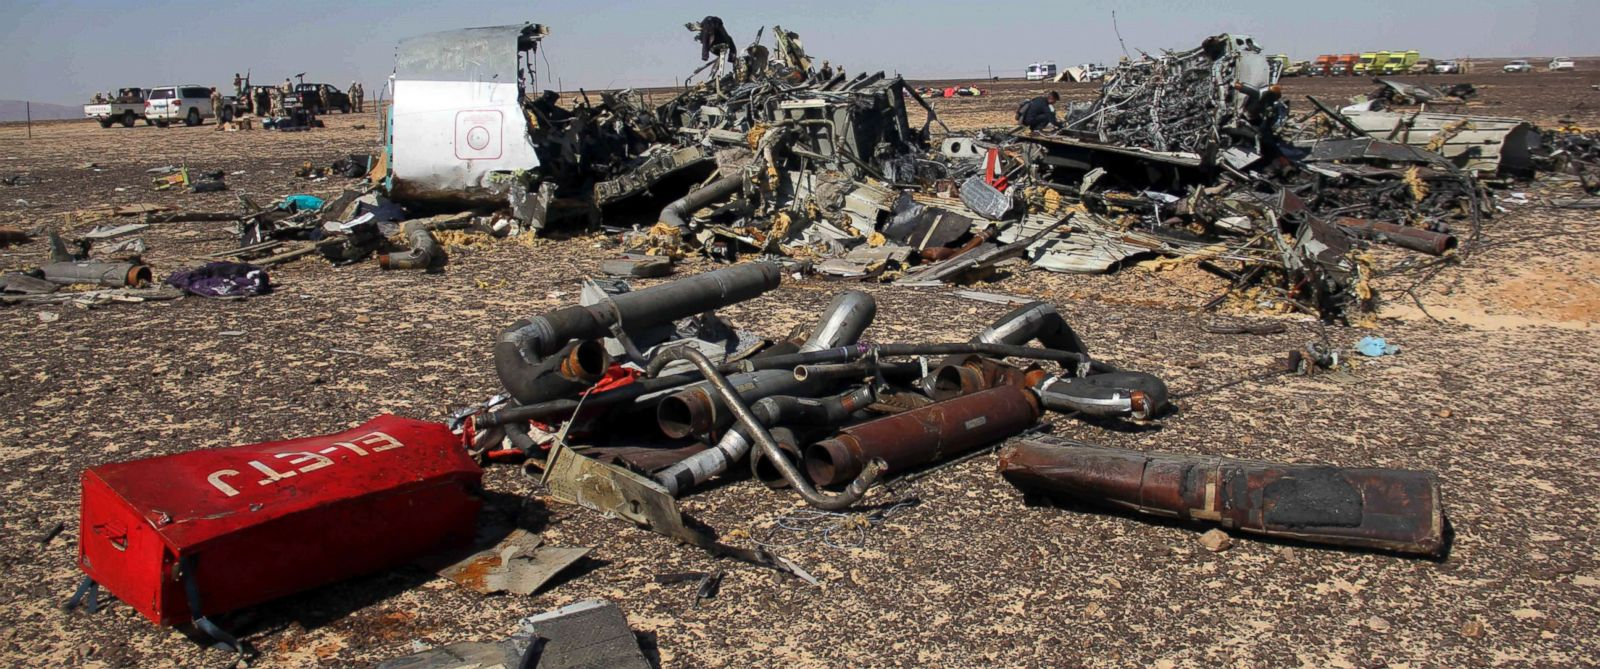 PHOTO: Egyptian security forces stand guard by debris of a Russian airplane at the site a day after the passenger jet bound for St. Petersburg, Russia crashed in Hassana, Egypt, Nov. 1, 2015.